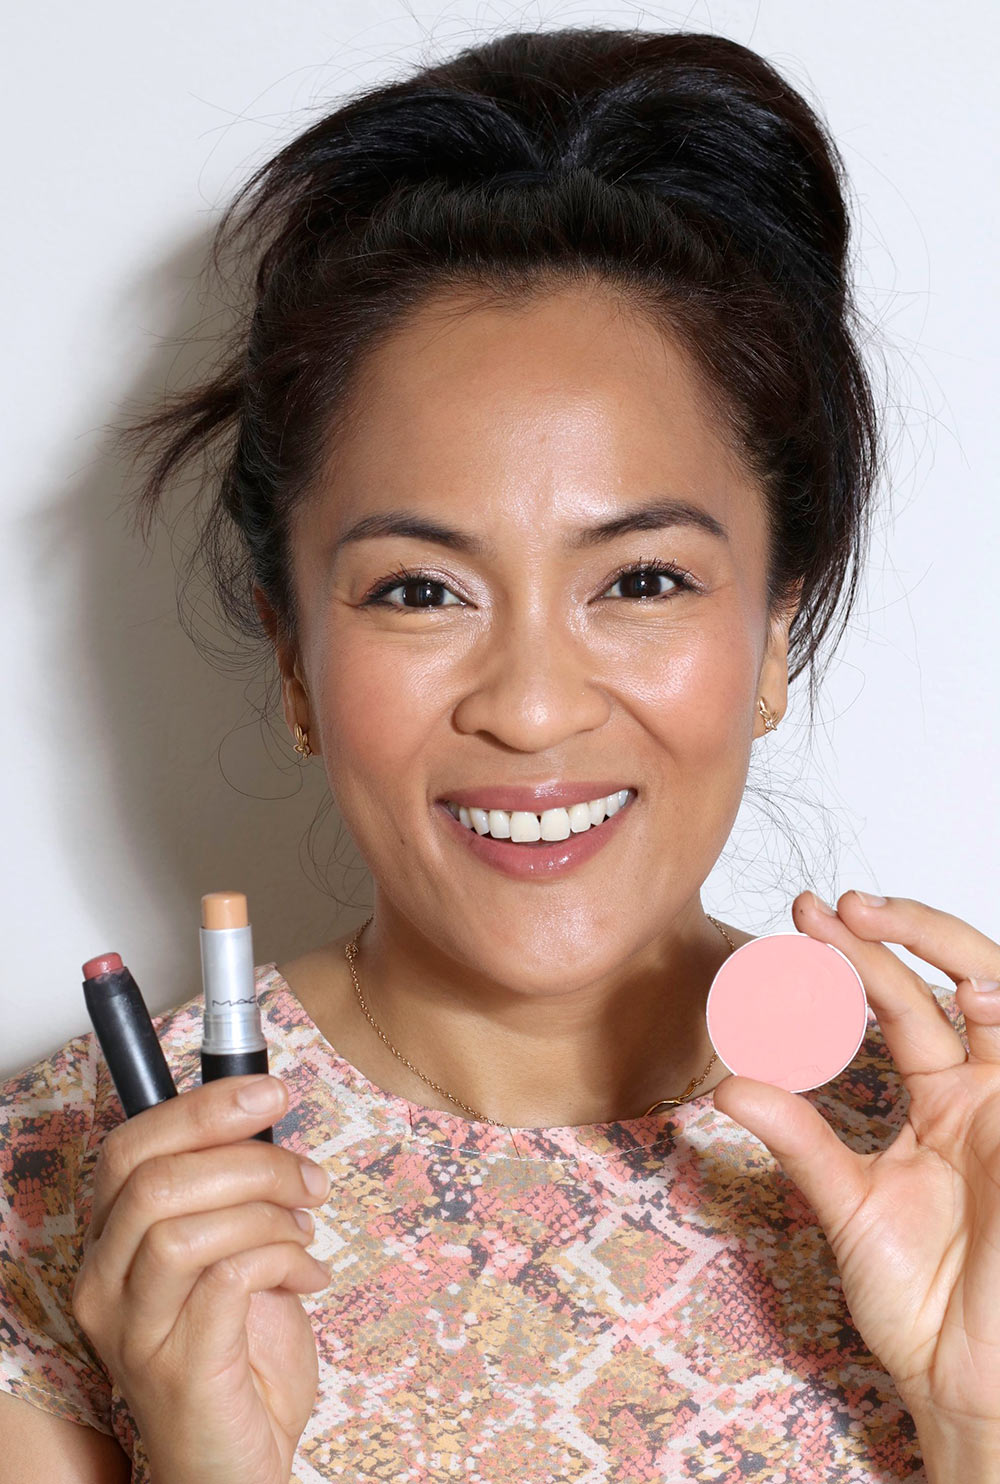 Current Crushes From MAC: Matchmaster Concealer, Melba Blush, In Extra Dimension Mascara and More - Makeup and Beauty Blog